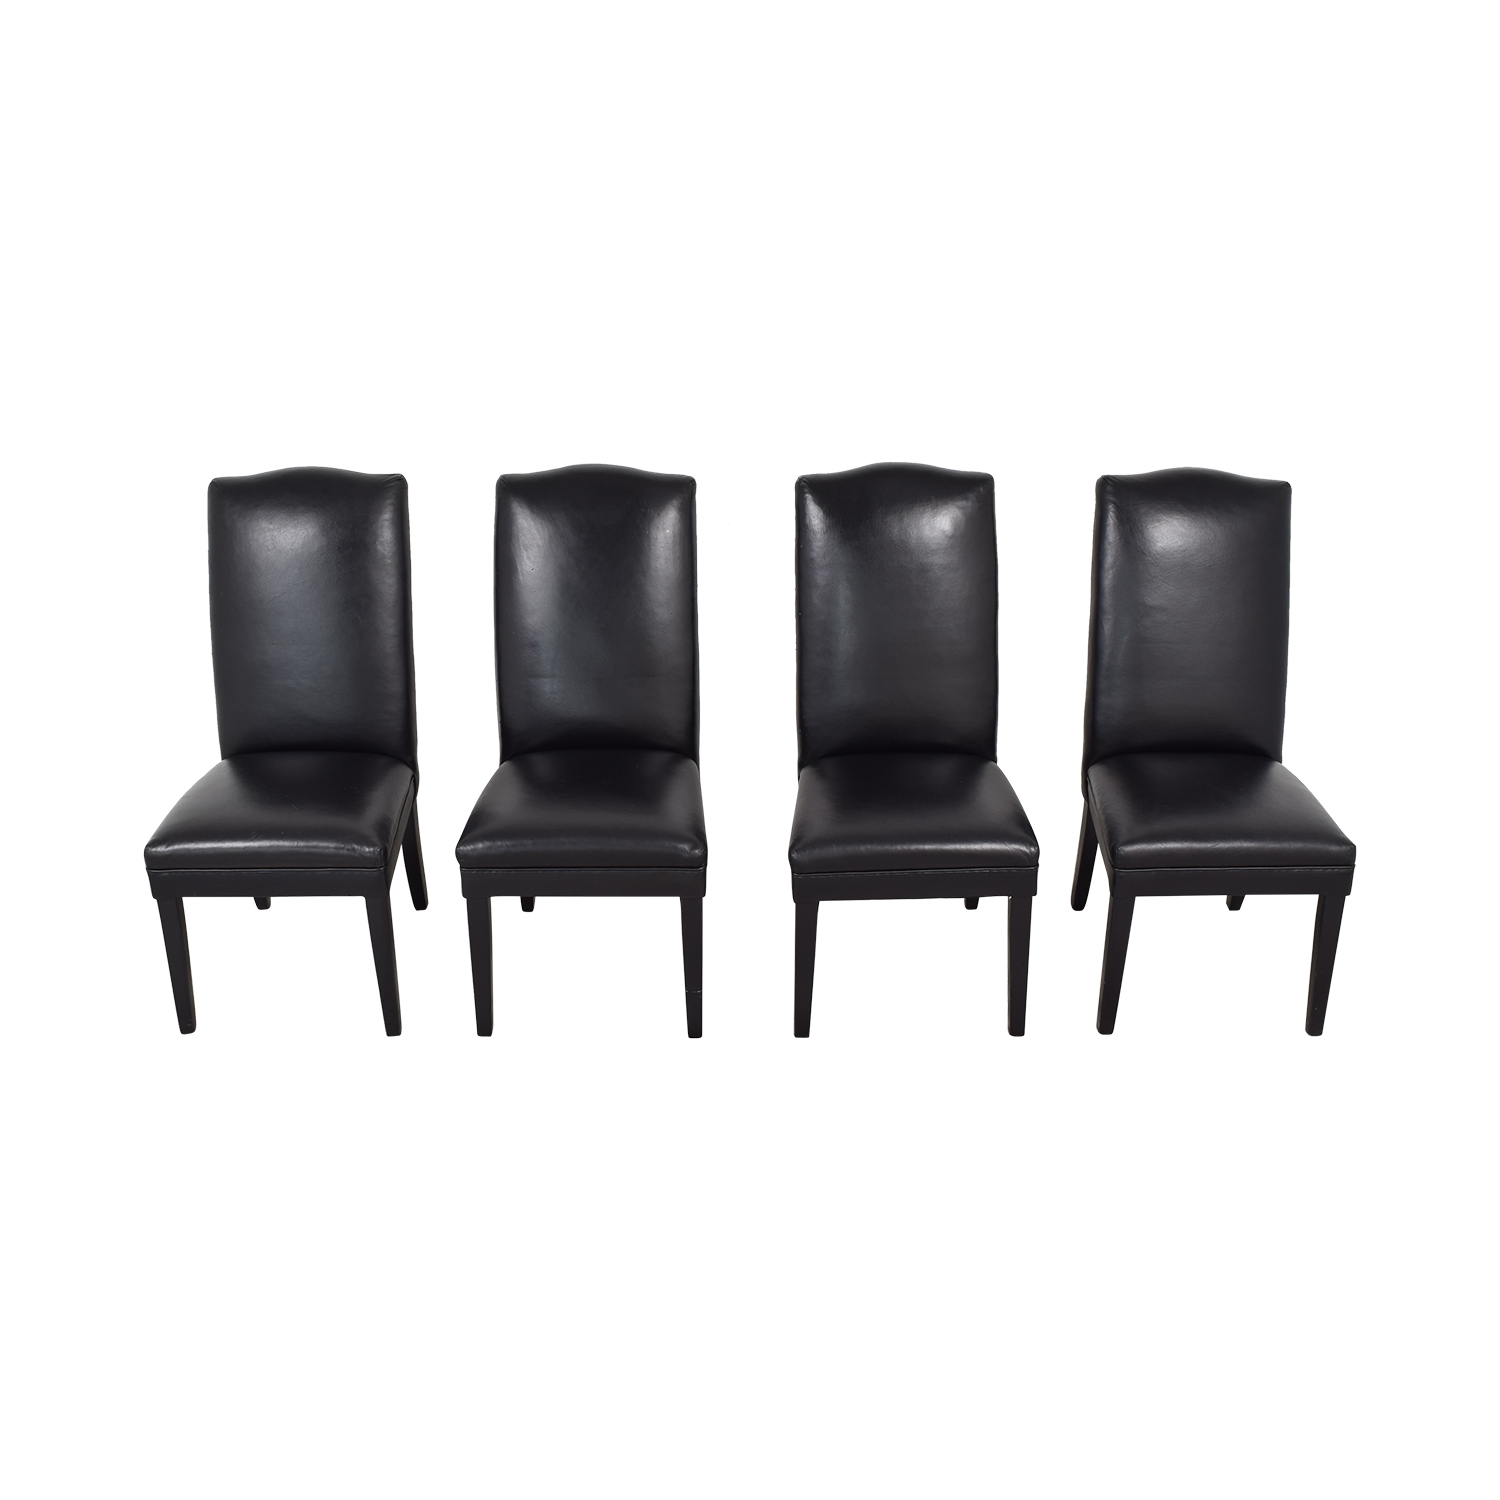 buy  Classic Style High Back Dining Chairs online